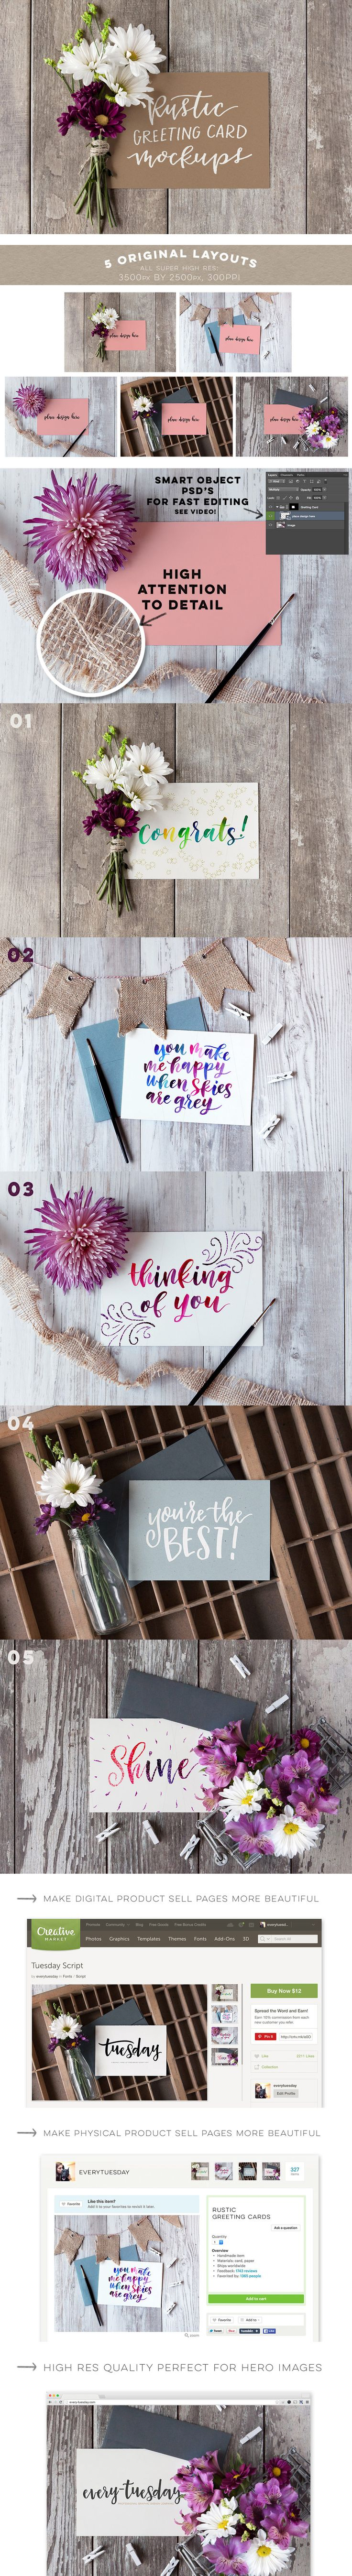 5 Rustic Greeting Card Mockups, available here! https://every-tuesday.com/rustic-cards